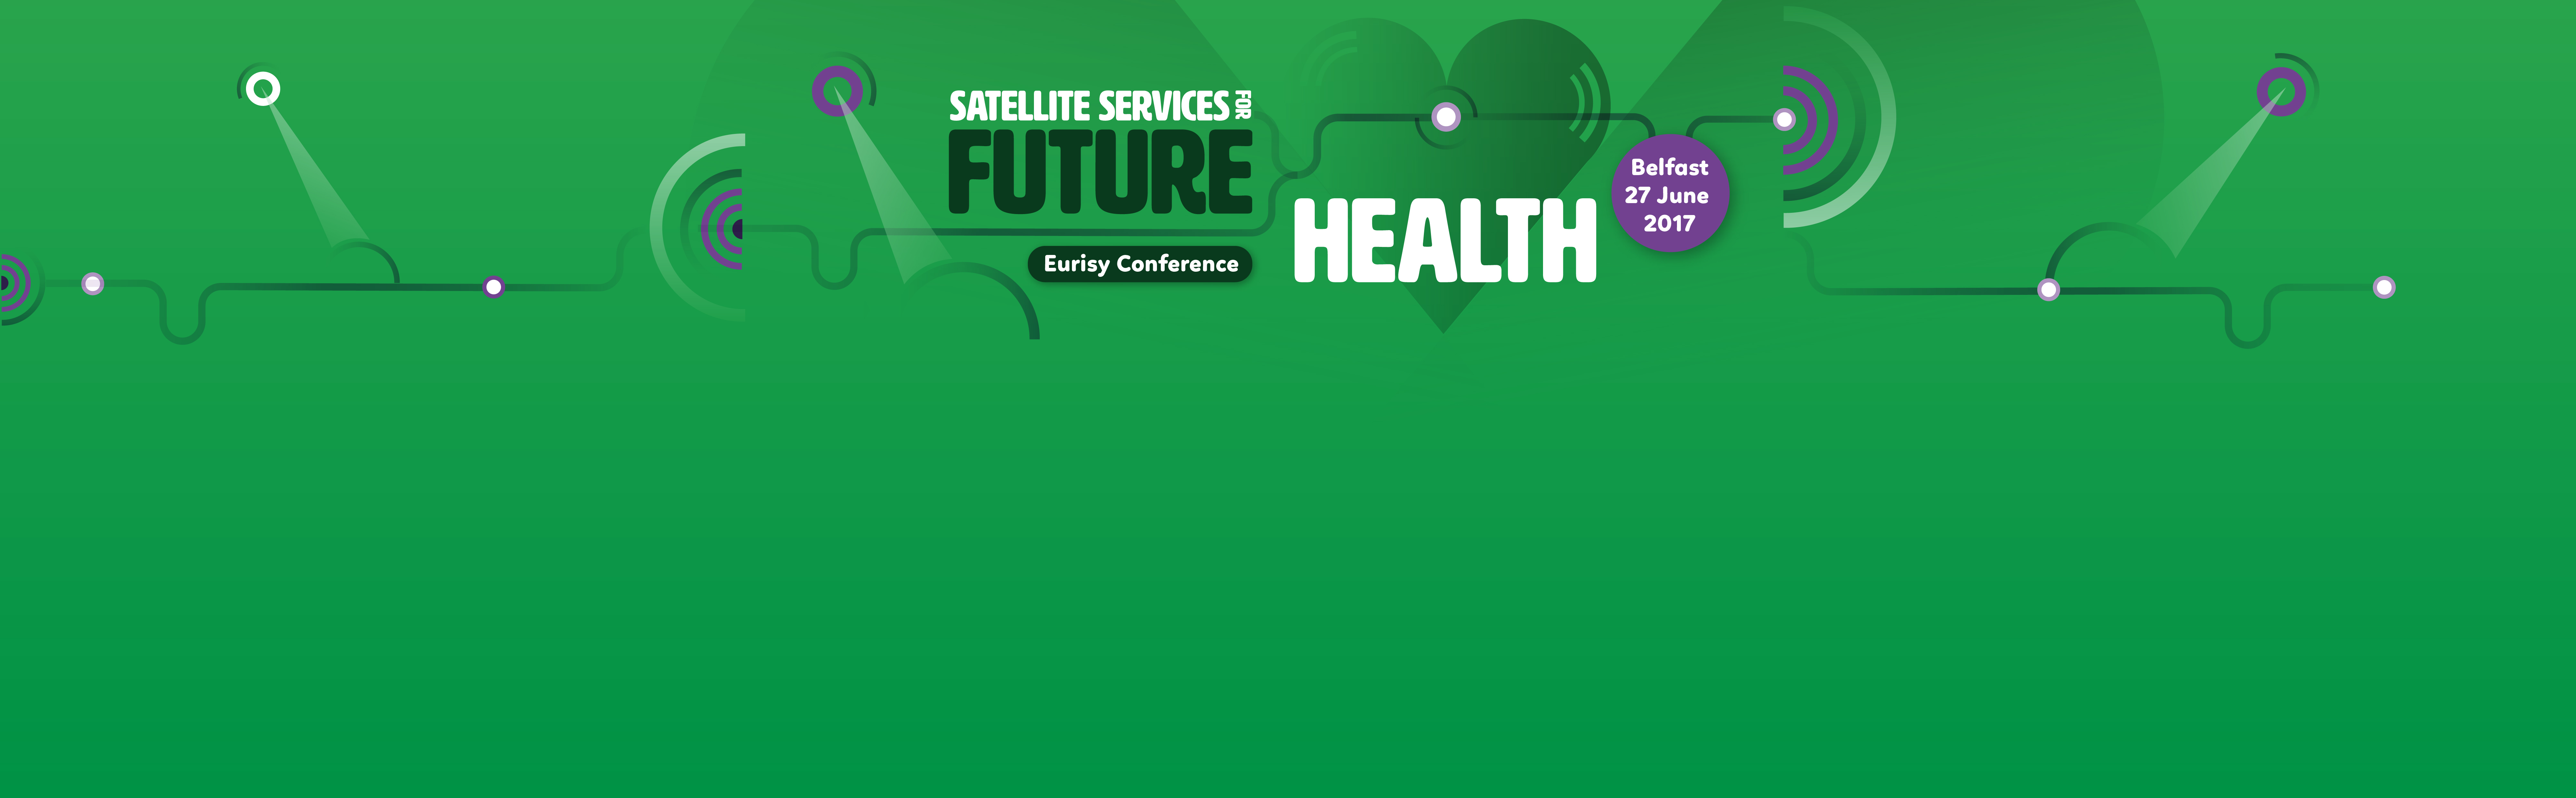 Satellite Services for Future Health